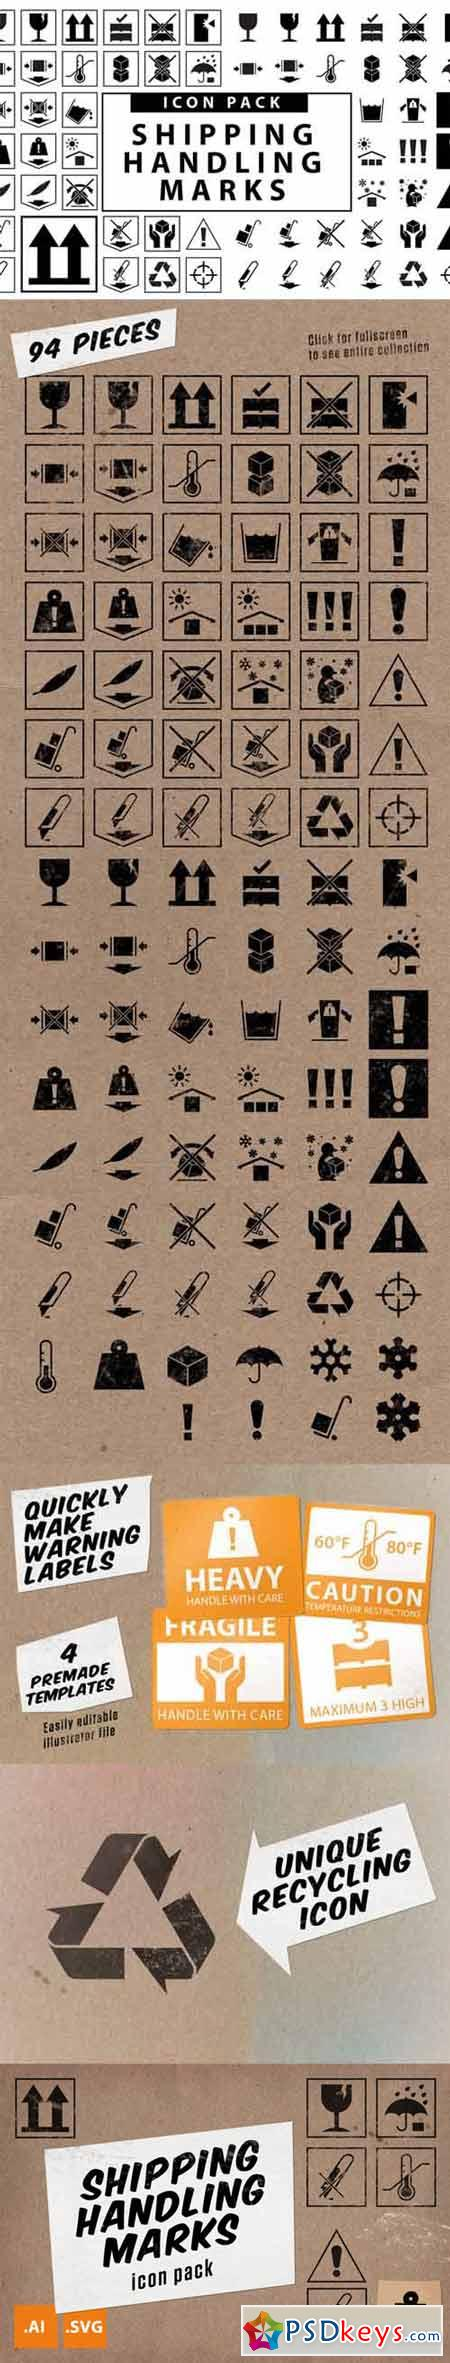 Travel Wise Shipping Labels Icon Set 127666